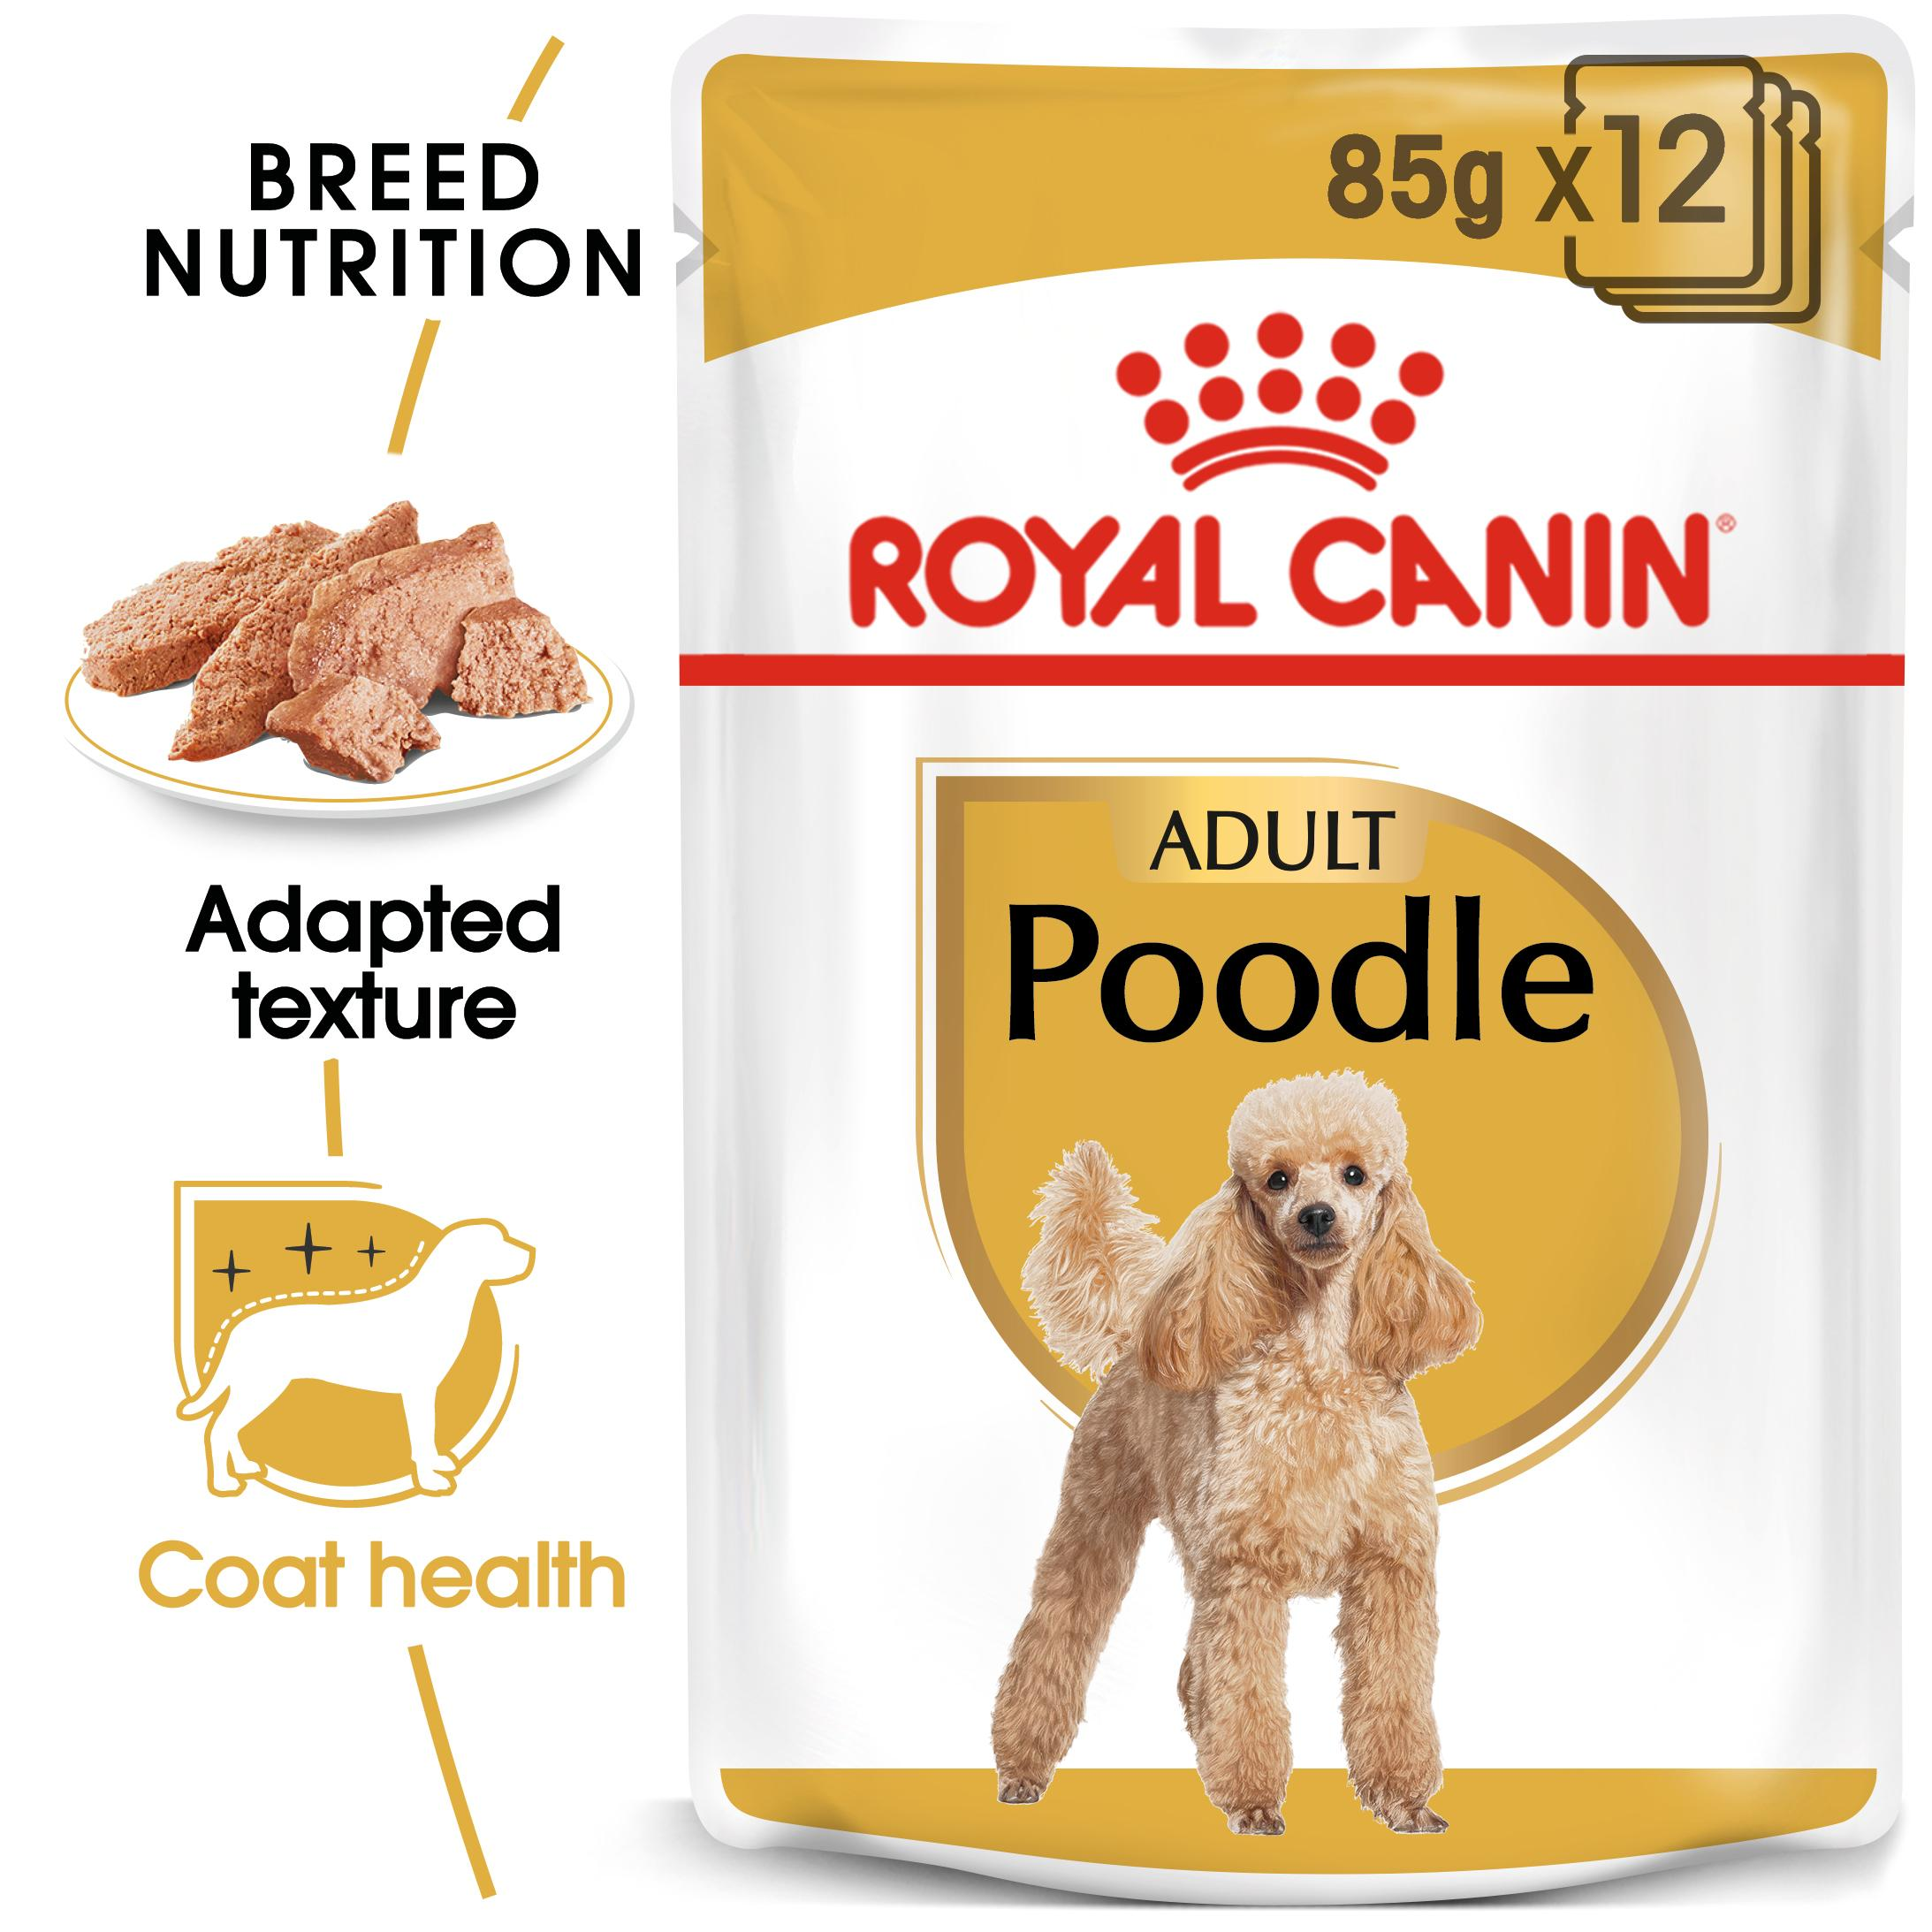 ROYAL CANIN® Poodle 85g x 12